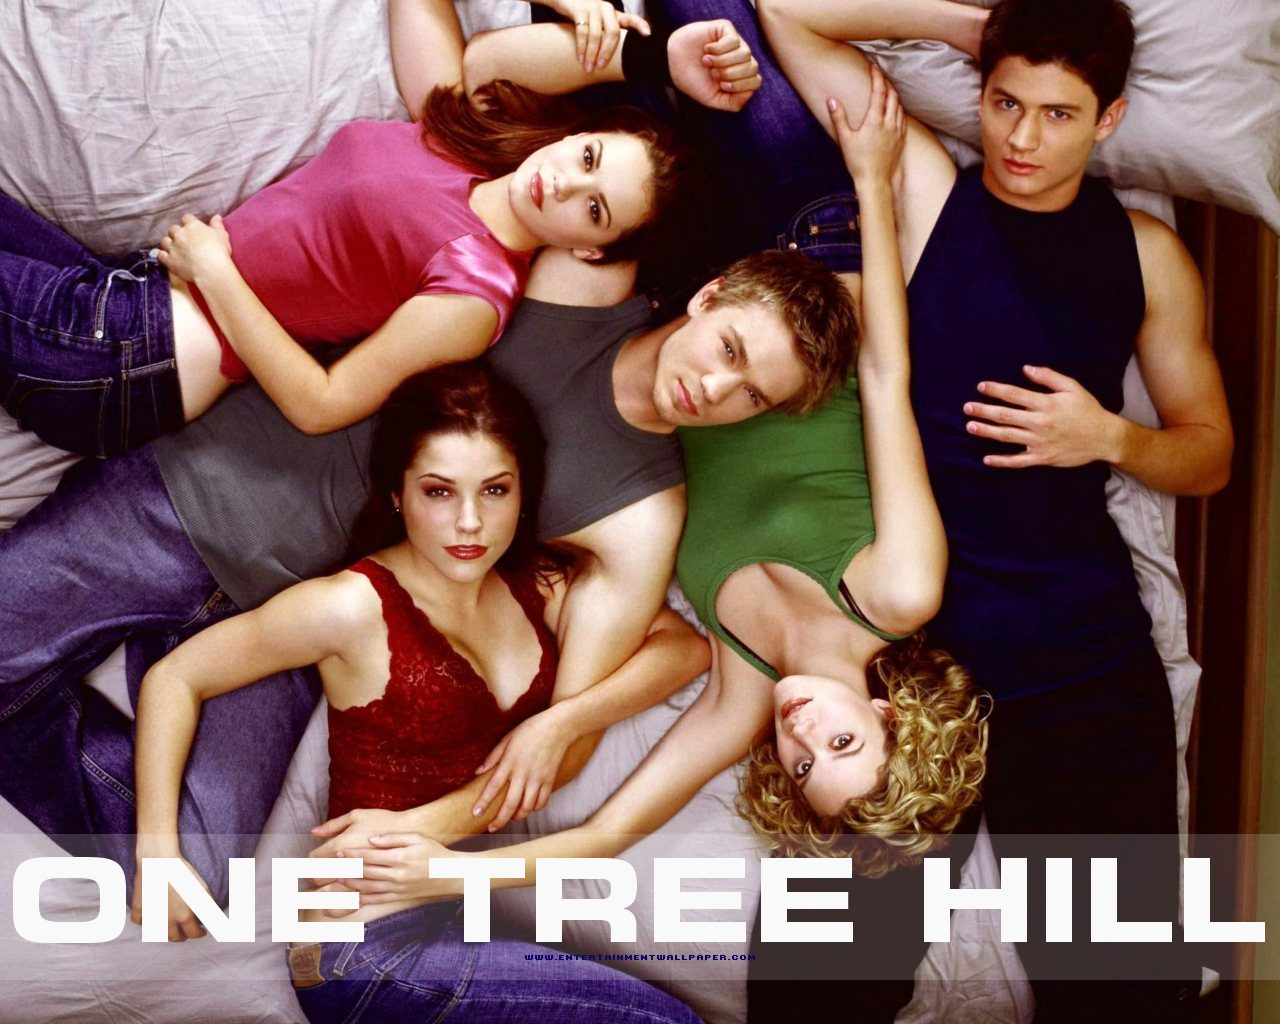 One Tree Hill gdr